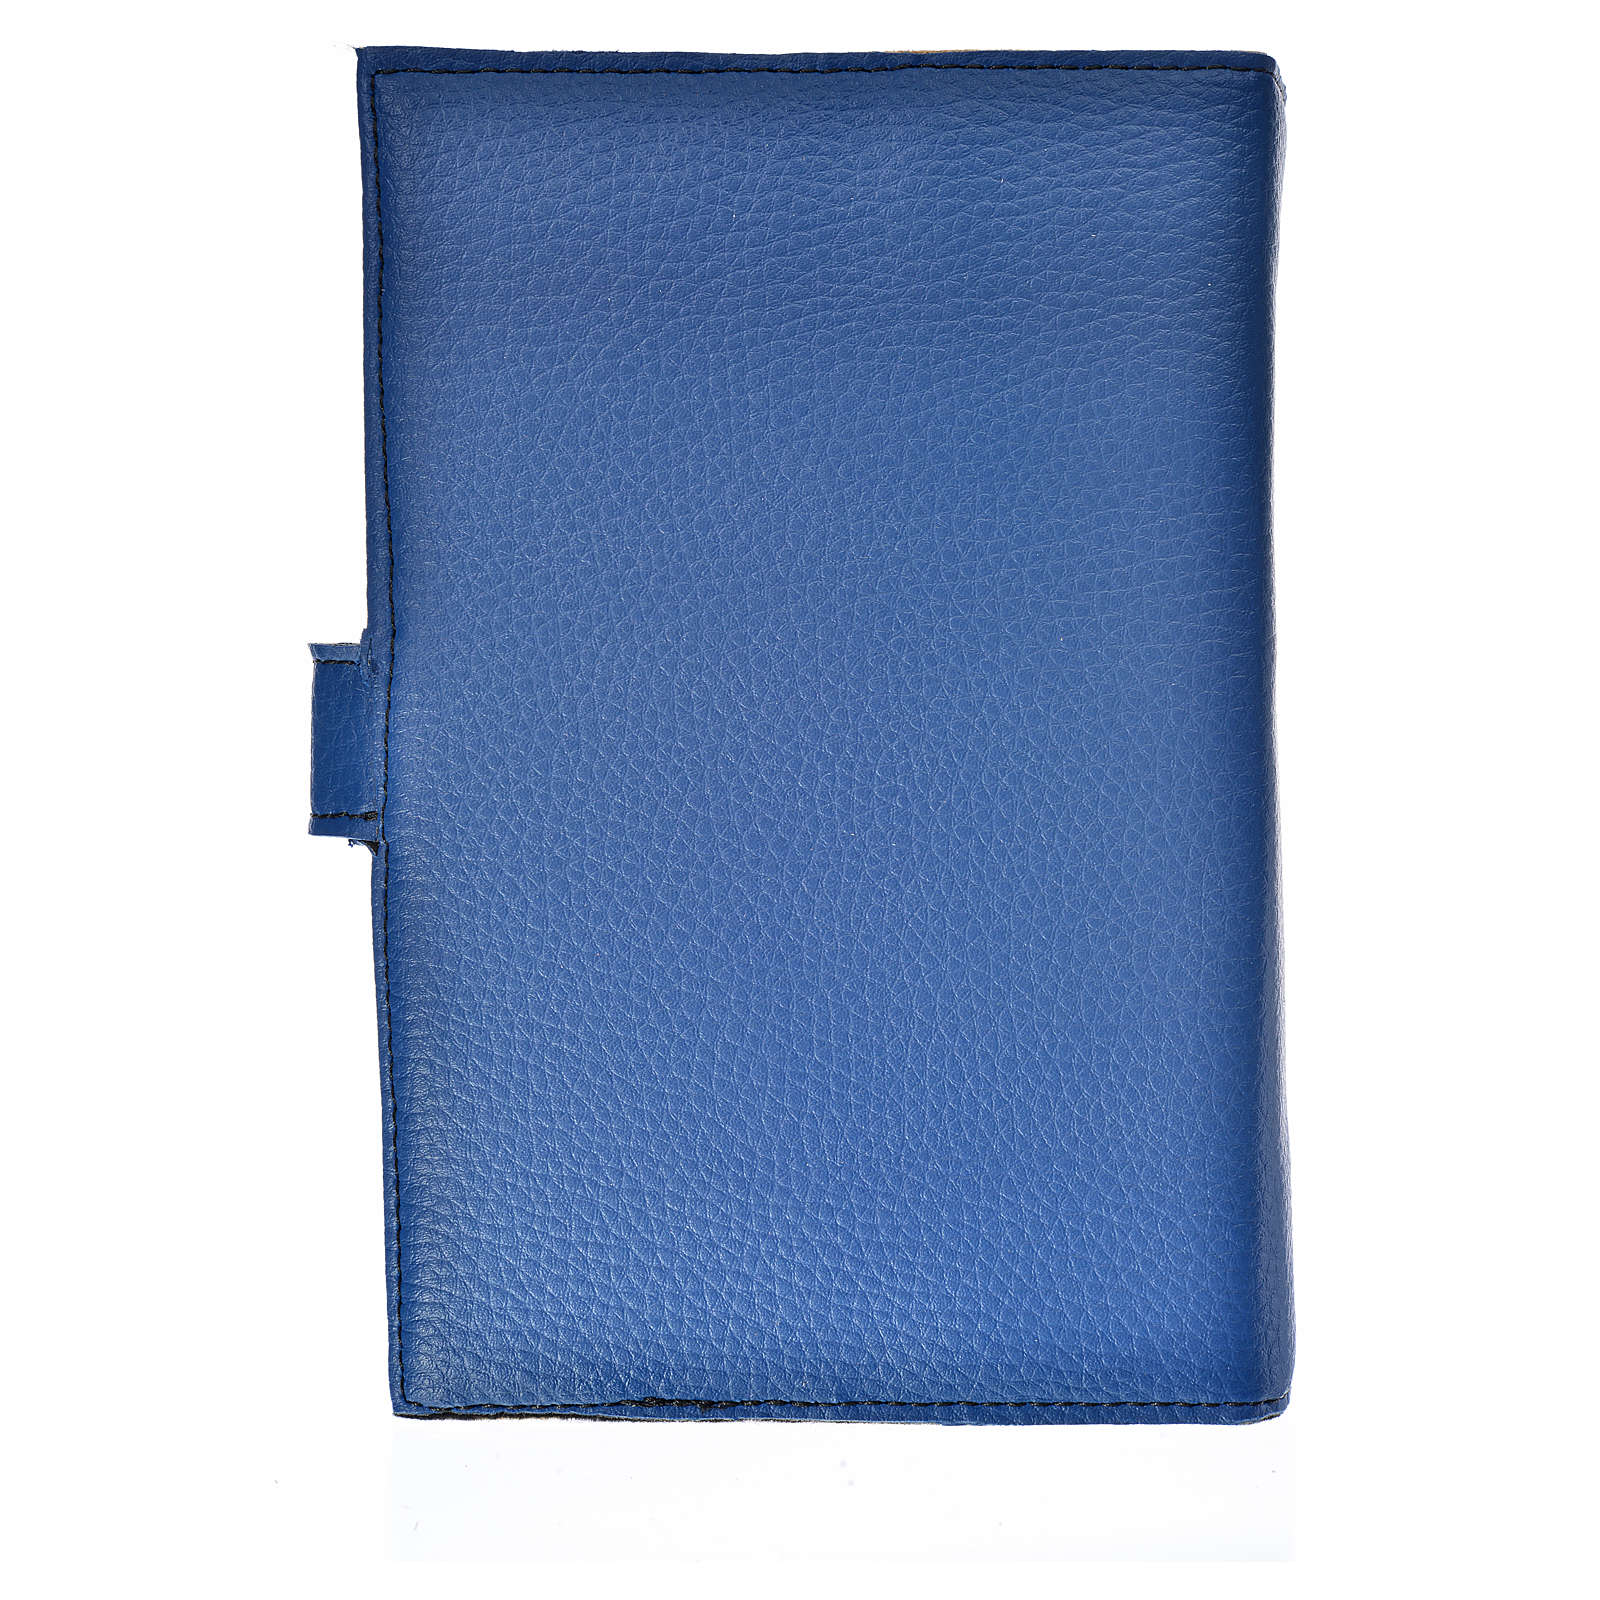 Cover for the New Jerusalem Bible Hard cover blue bonded leather Our Lady 4